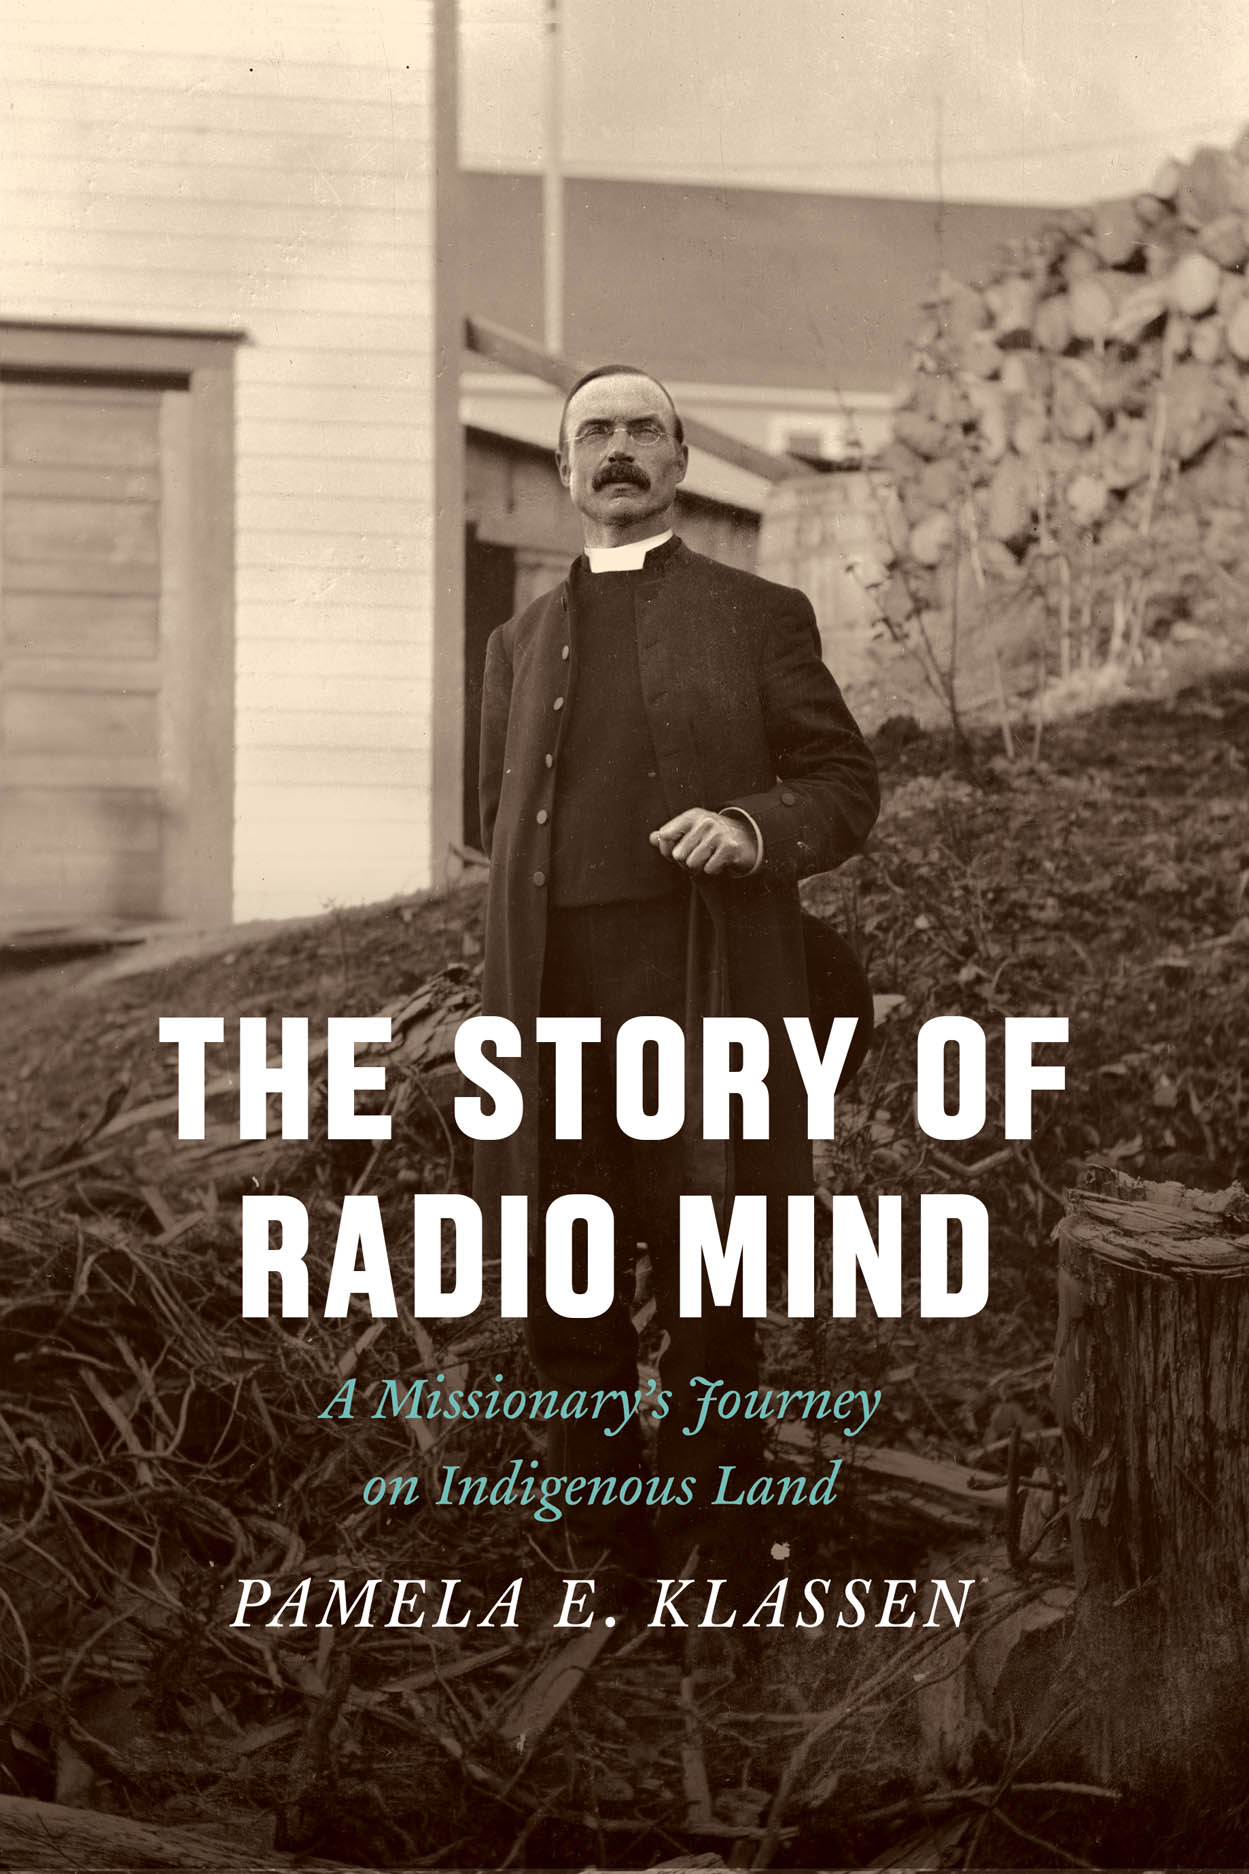 The Story of Radio Mind